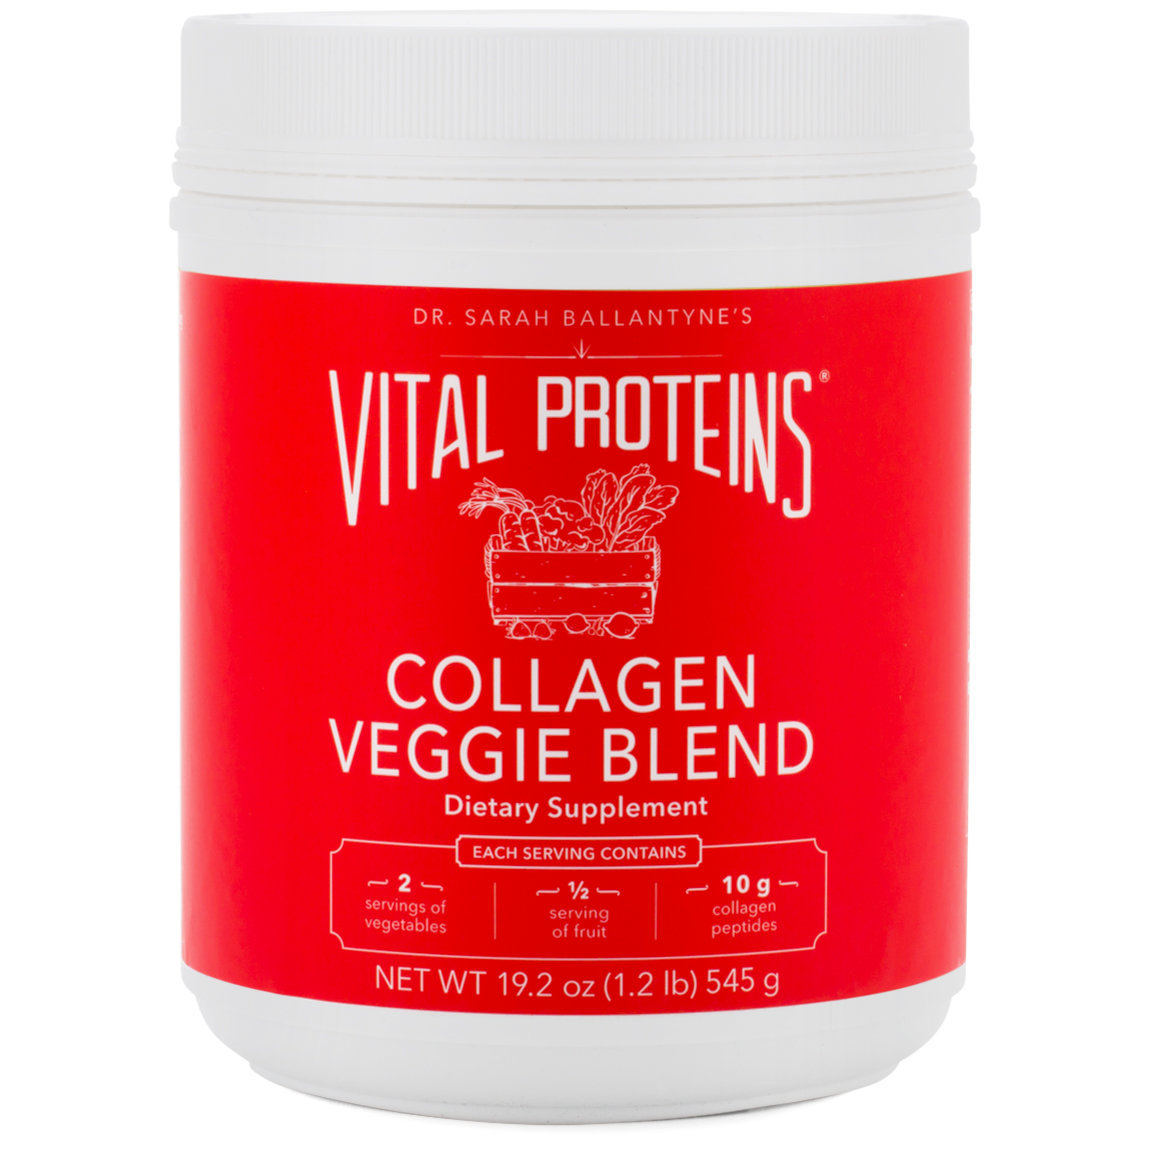 Vital Proteins Collagen Veggie Blend product swatch.